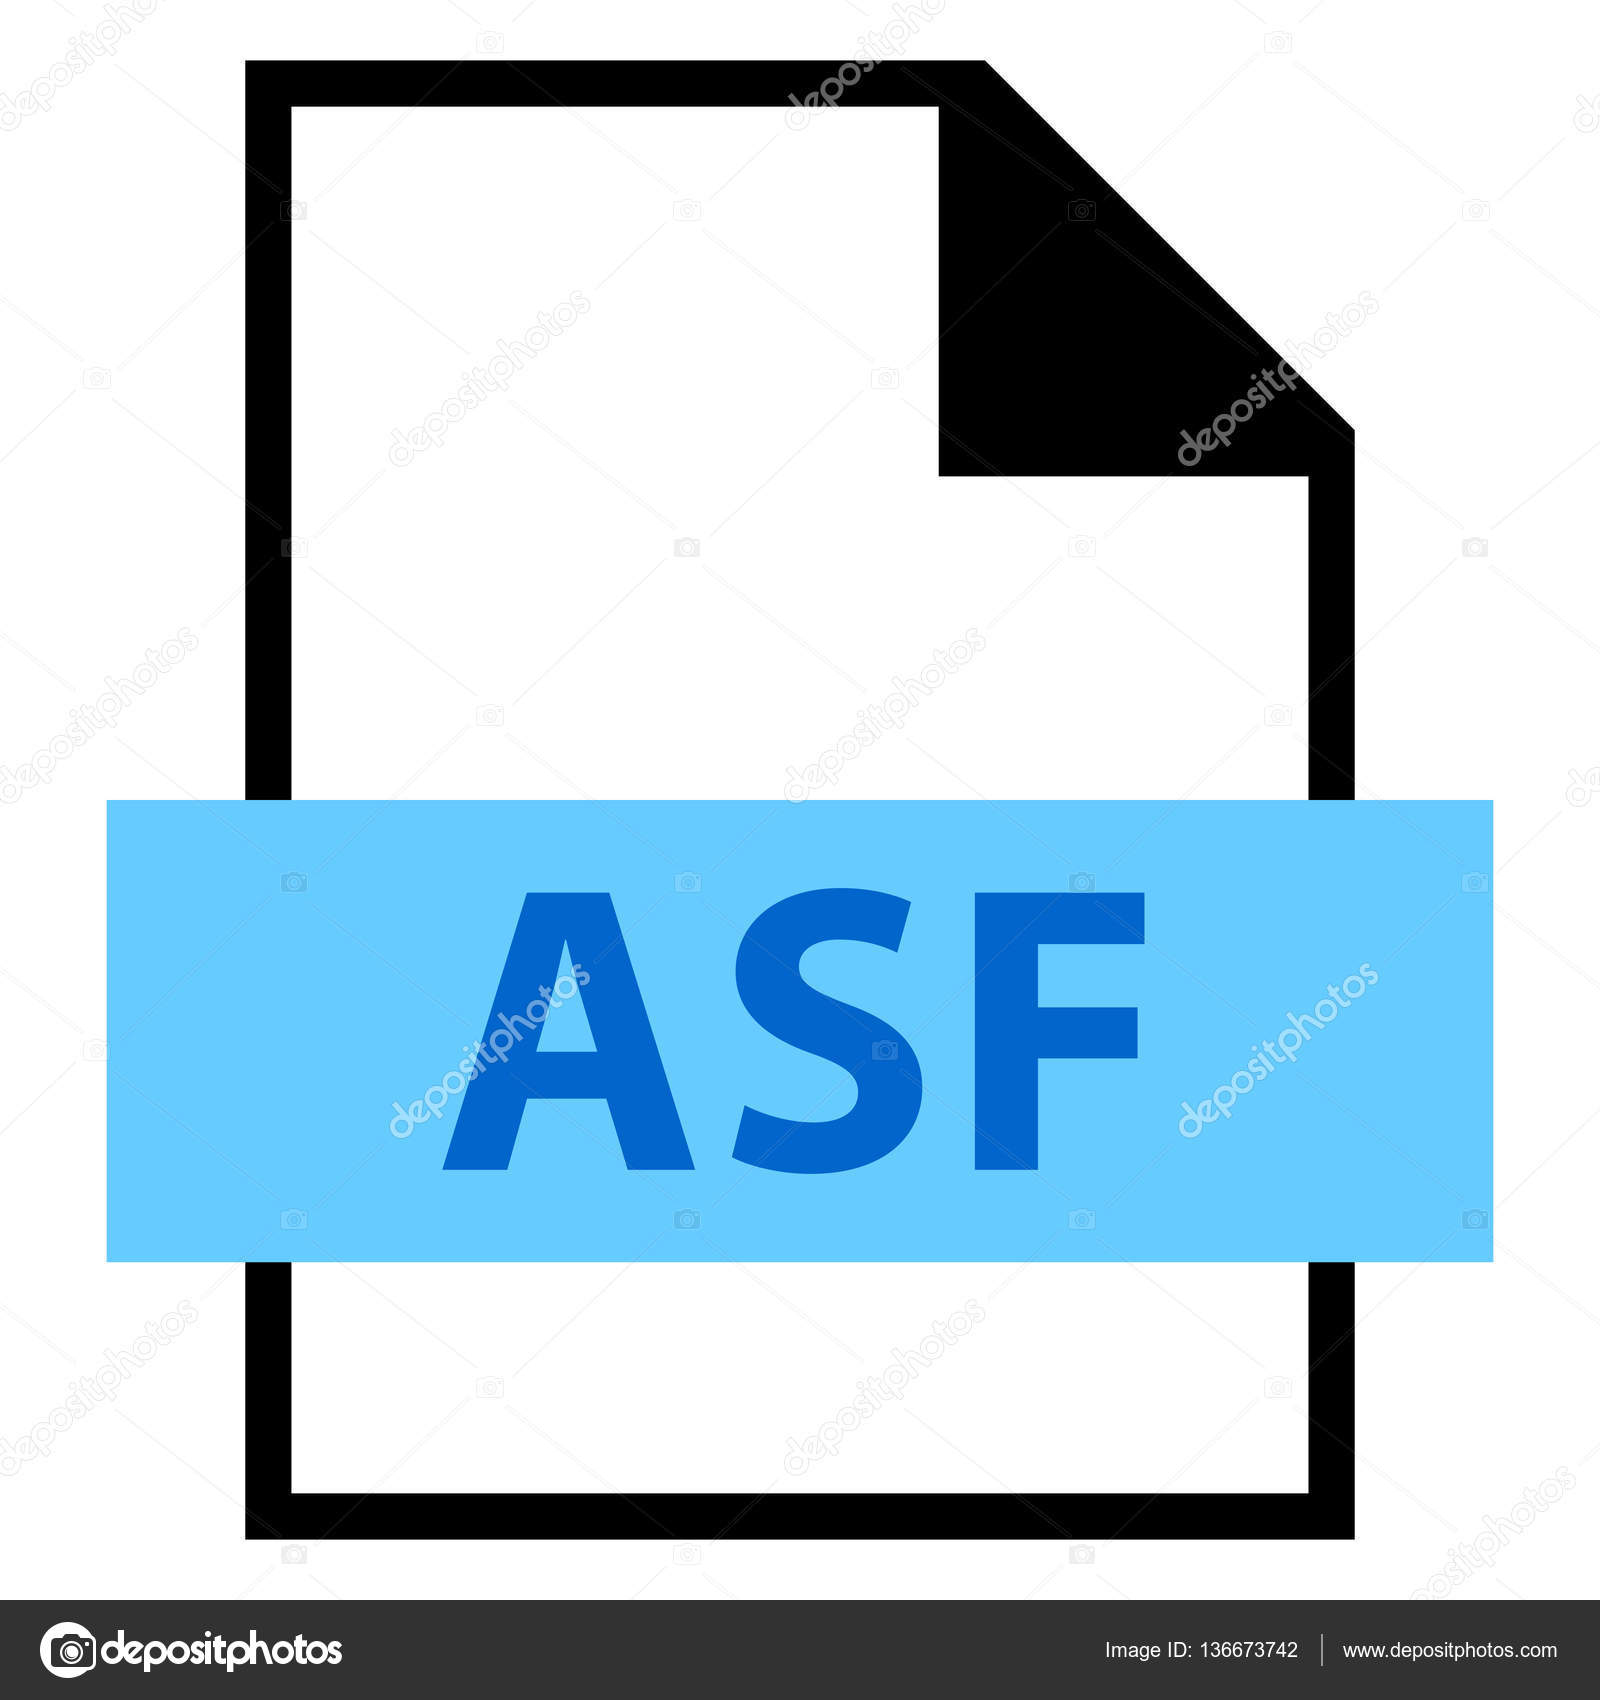 Best asf player free download to play asf files on windows & mac.